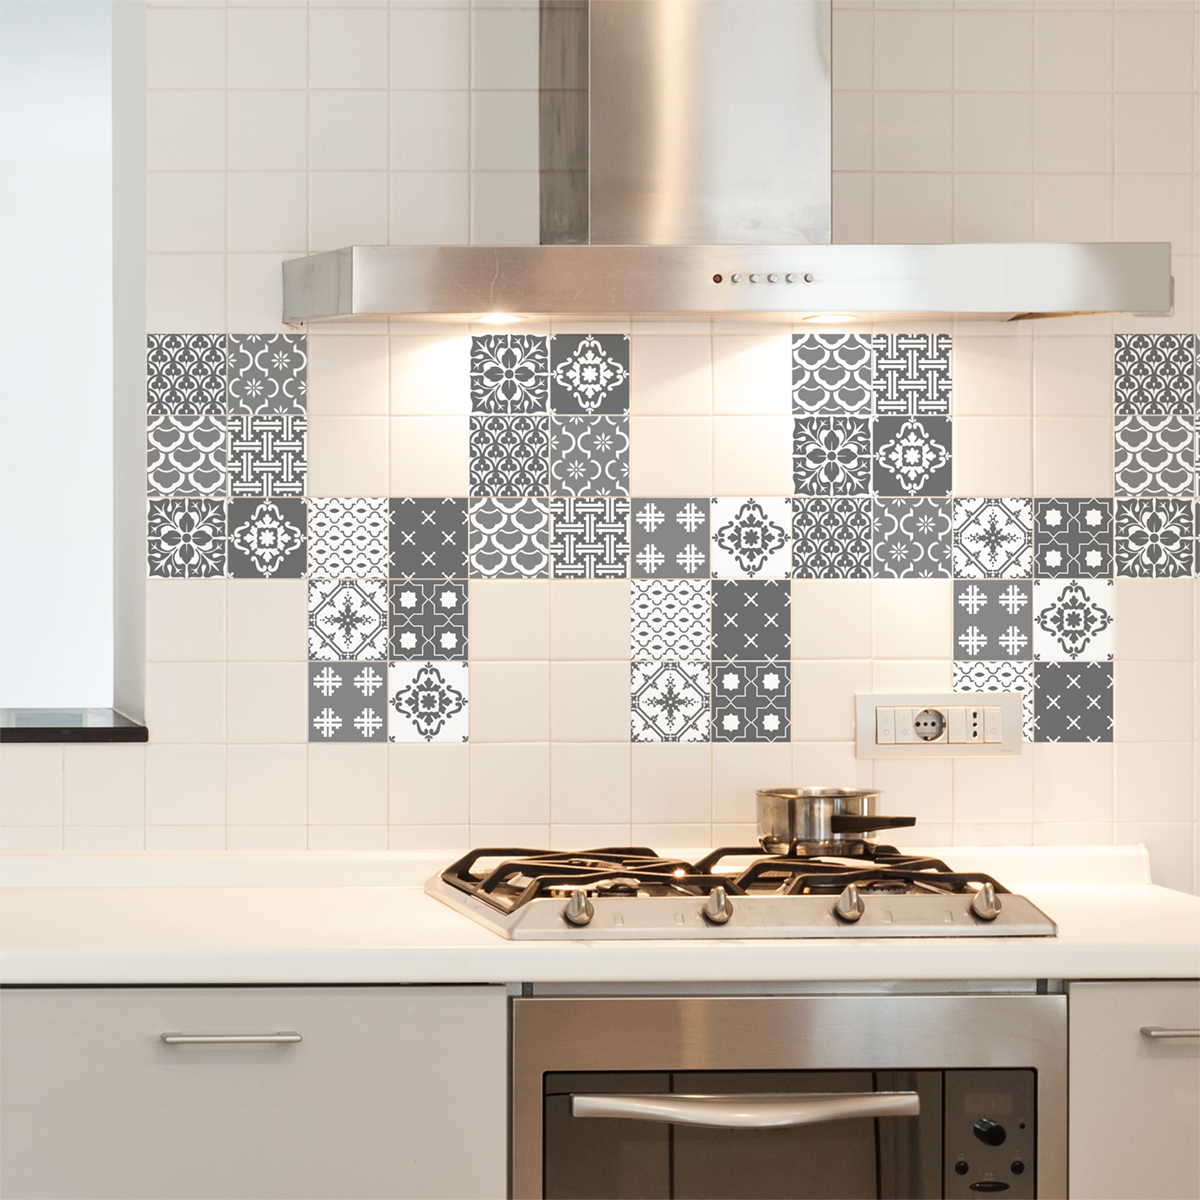 12 stickers carrelages scandinaves oslo cuisine carrelages ambiance sticker - Stickers cuisine carrelage ...